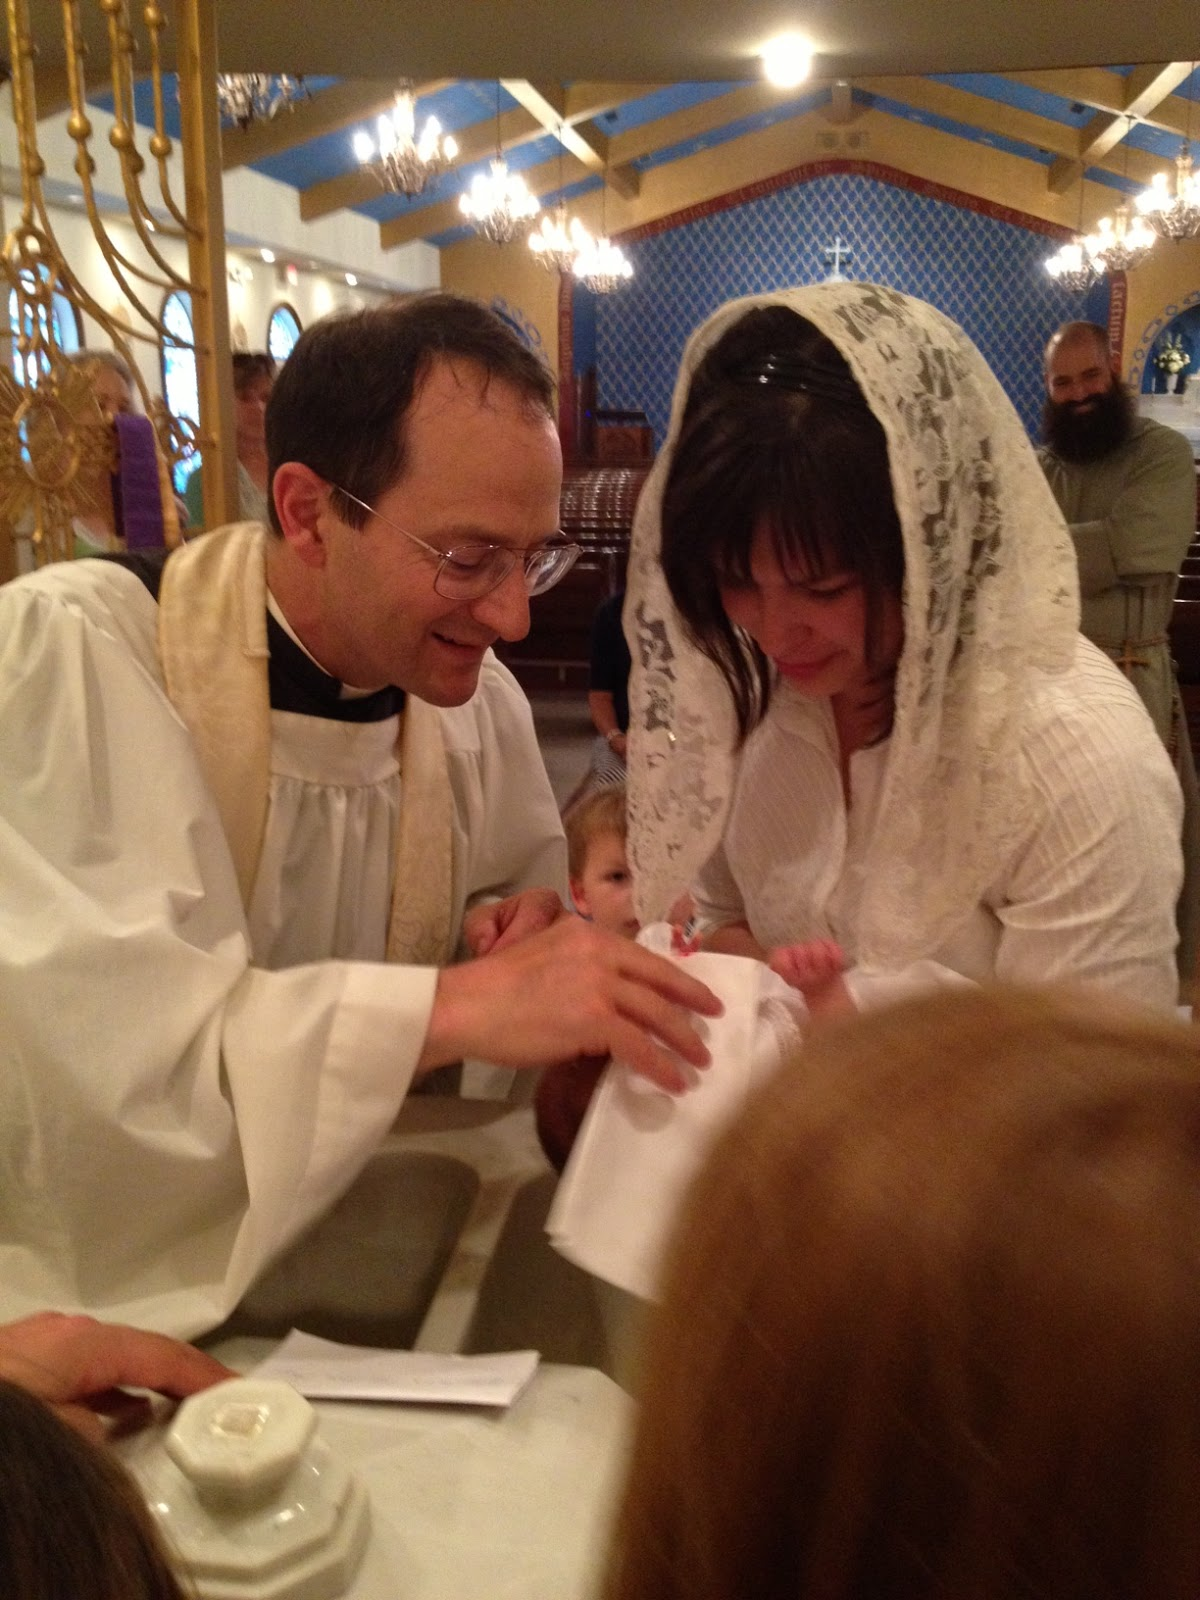 Exorcism satan and the baptismal liturgy outside the gates every time i watch a baptism especially the baptisms of my own children i cannot help but be so grateful to god he led us to become catholic biocorpaavc Choice Image